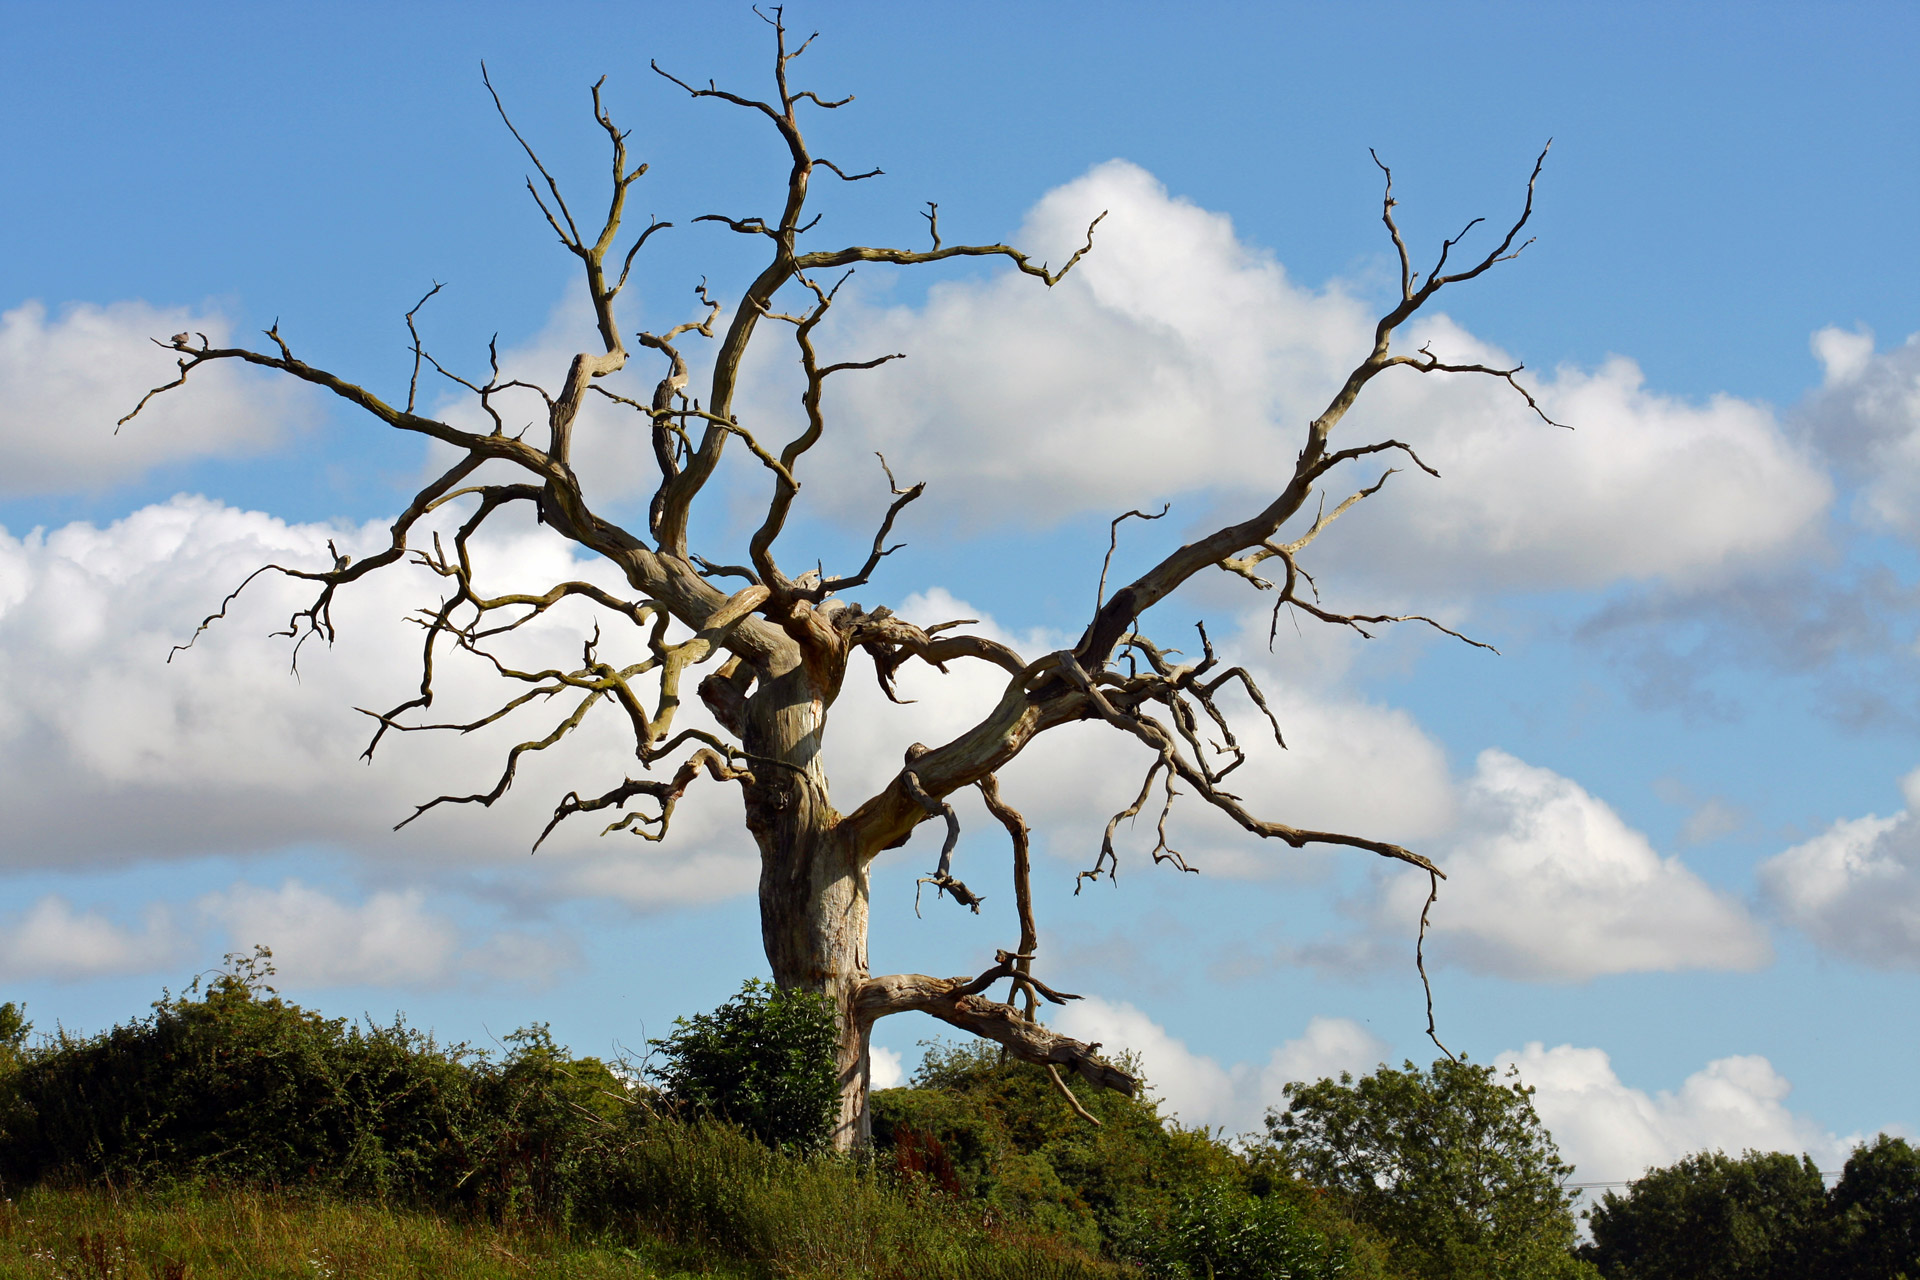 Sky Hd Wallpaper Dead Tree Free Stock Photo Public Domain Pictures